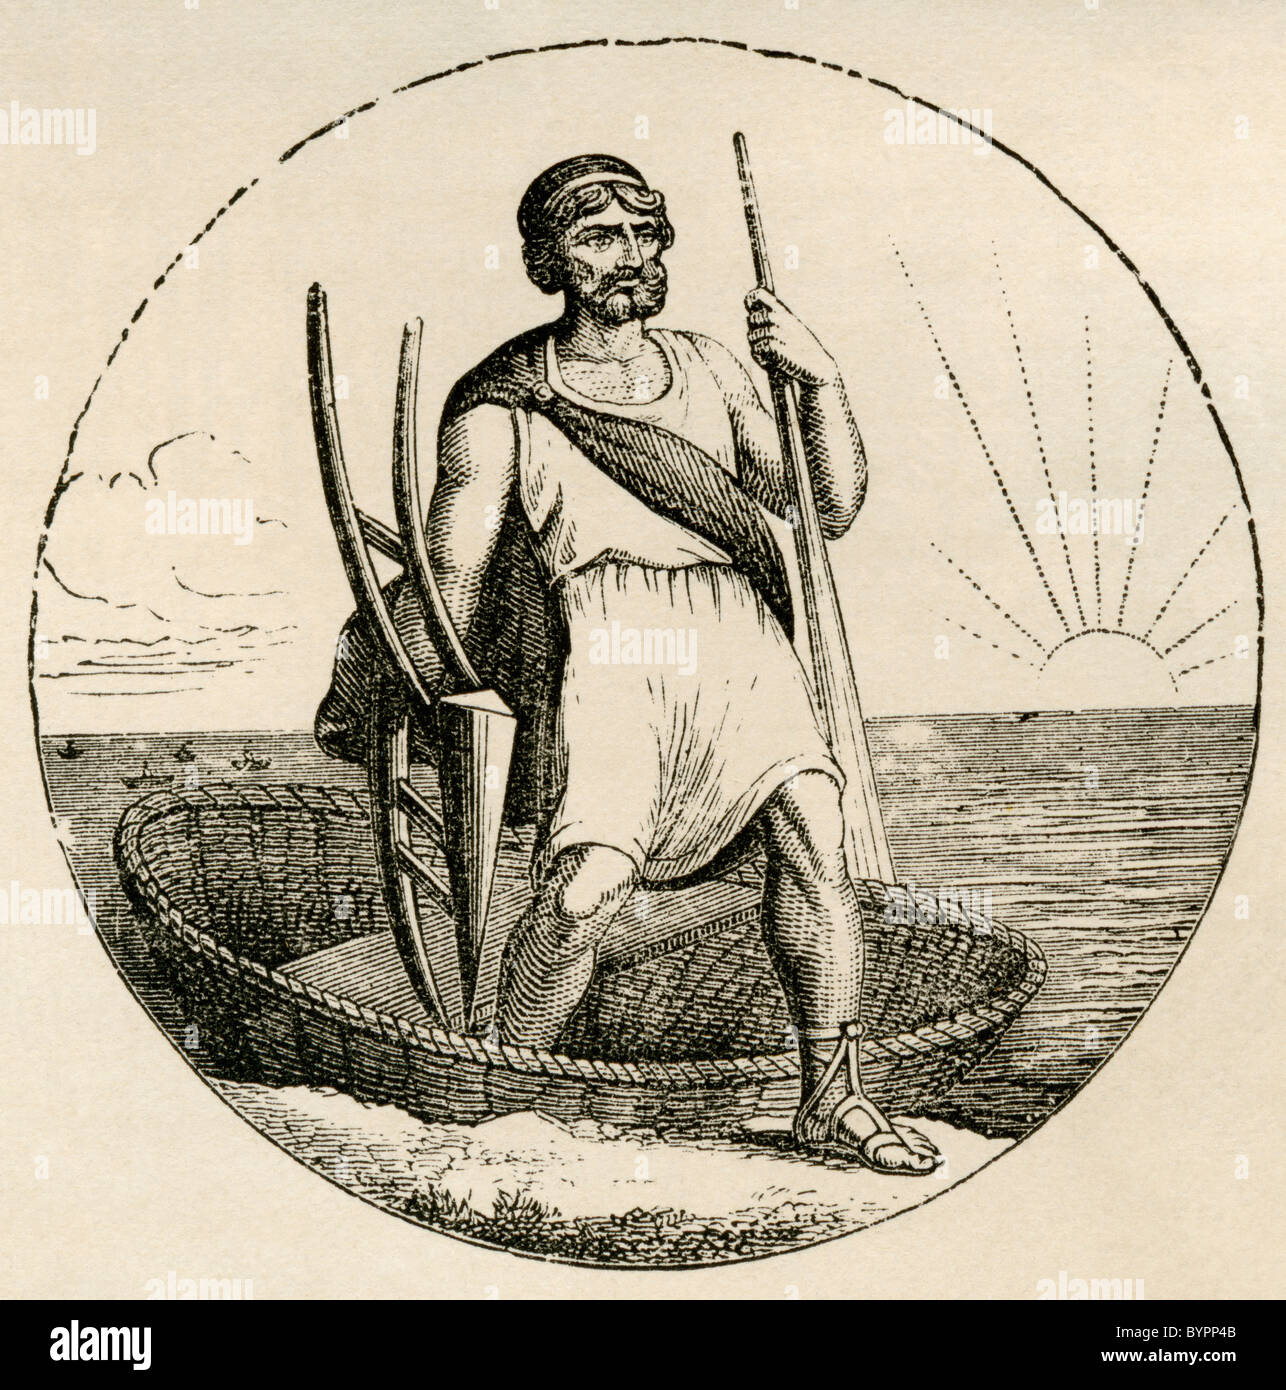 Ancient Briton with Coracle and plow. - Stock Image